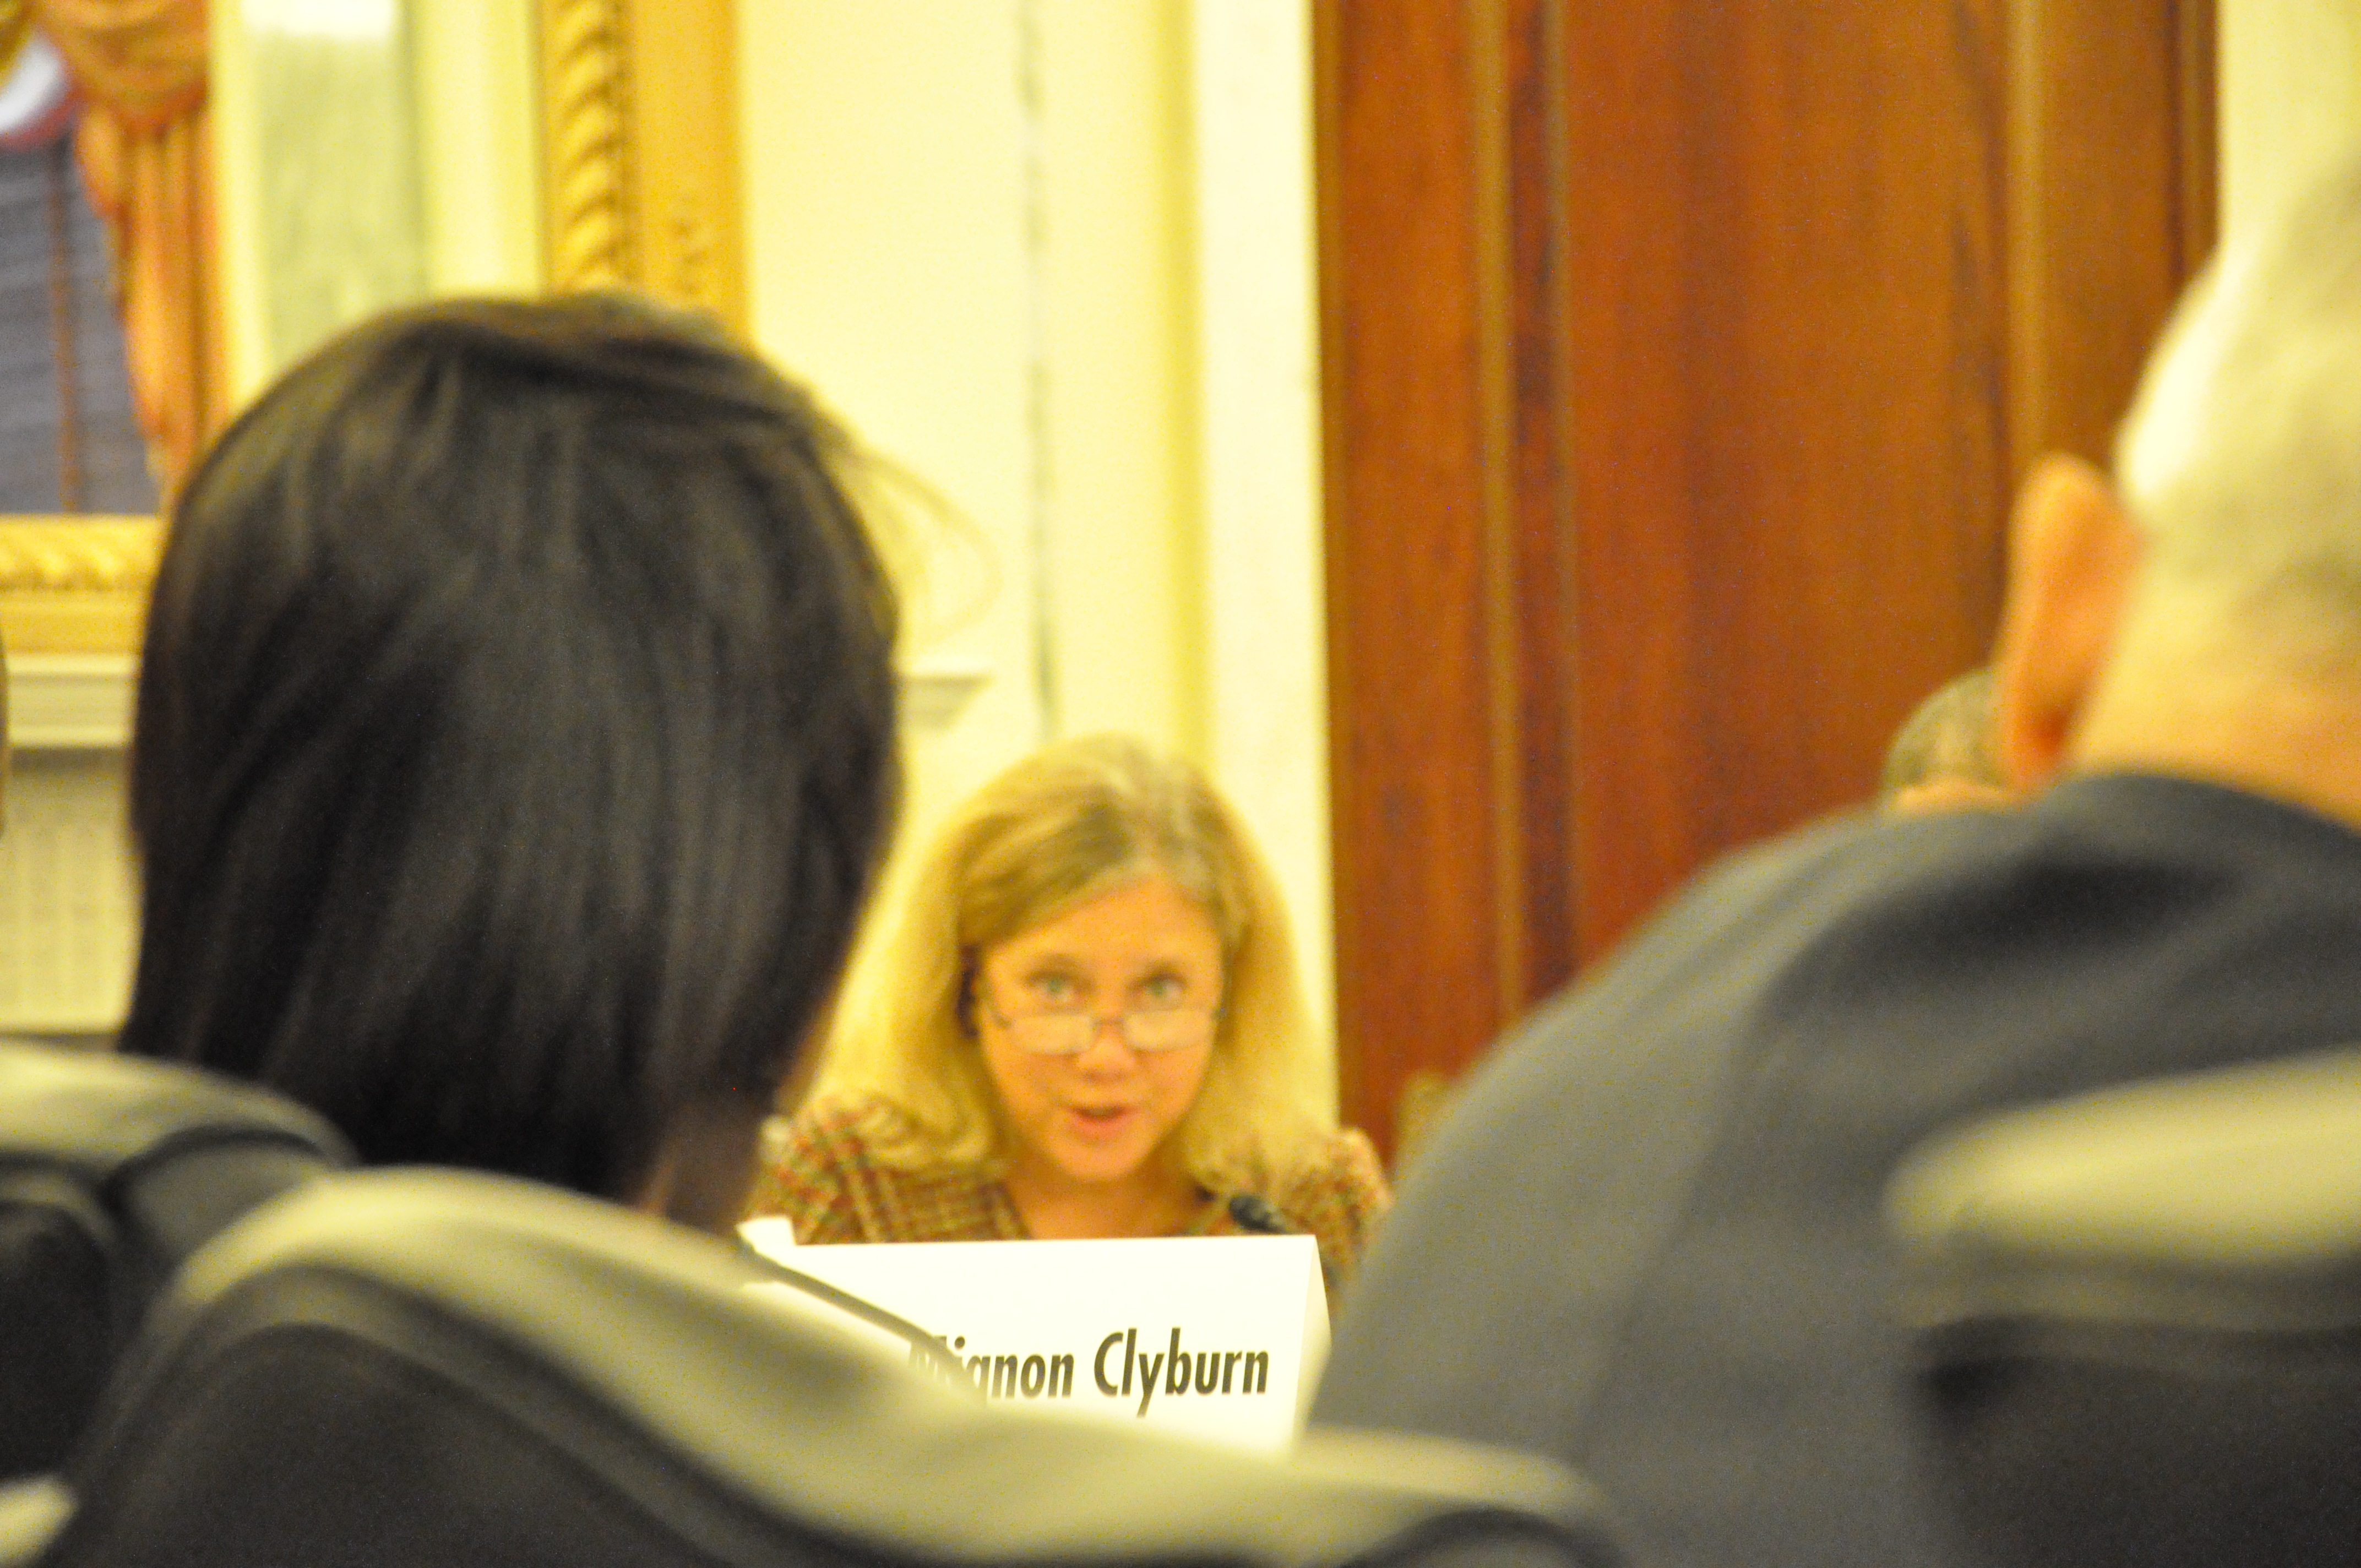 senator-landrieu-telling-bridgeja-she-impressed-she-was-with-her.jpg